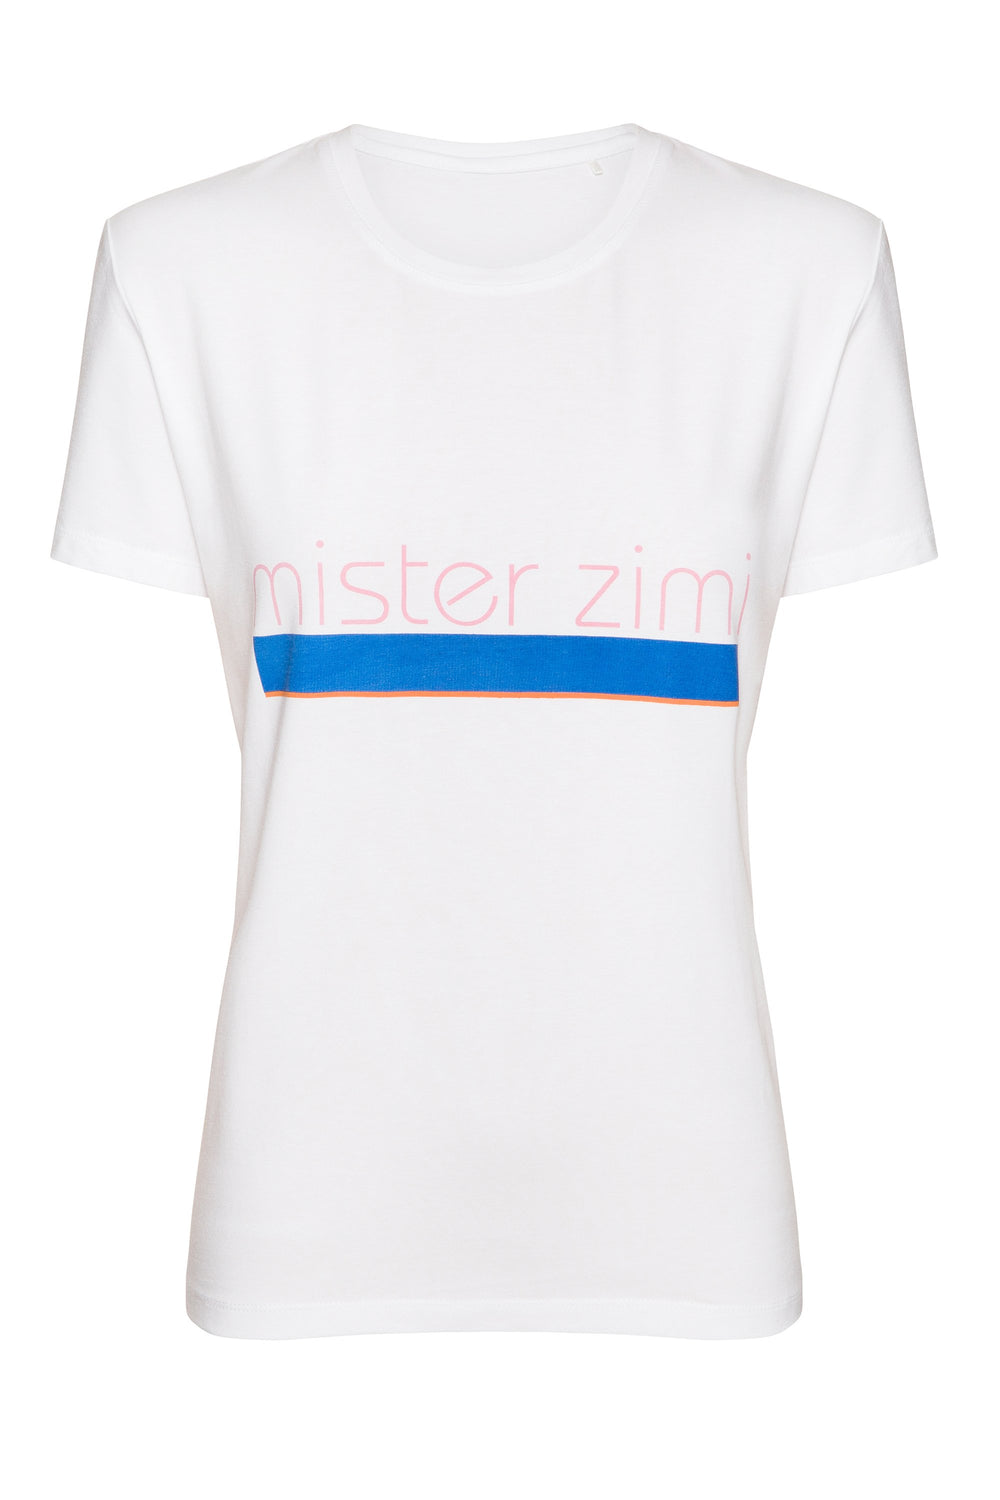 Zimi Tee In Blue